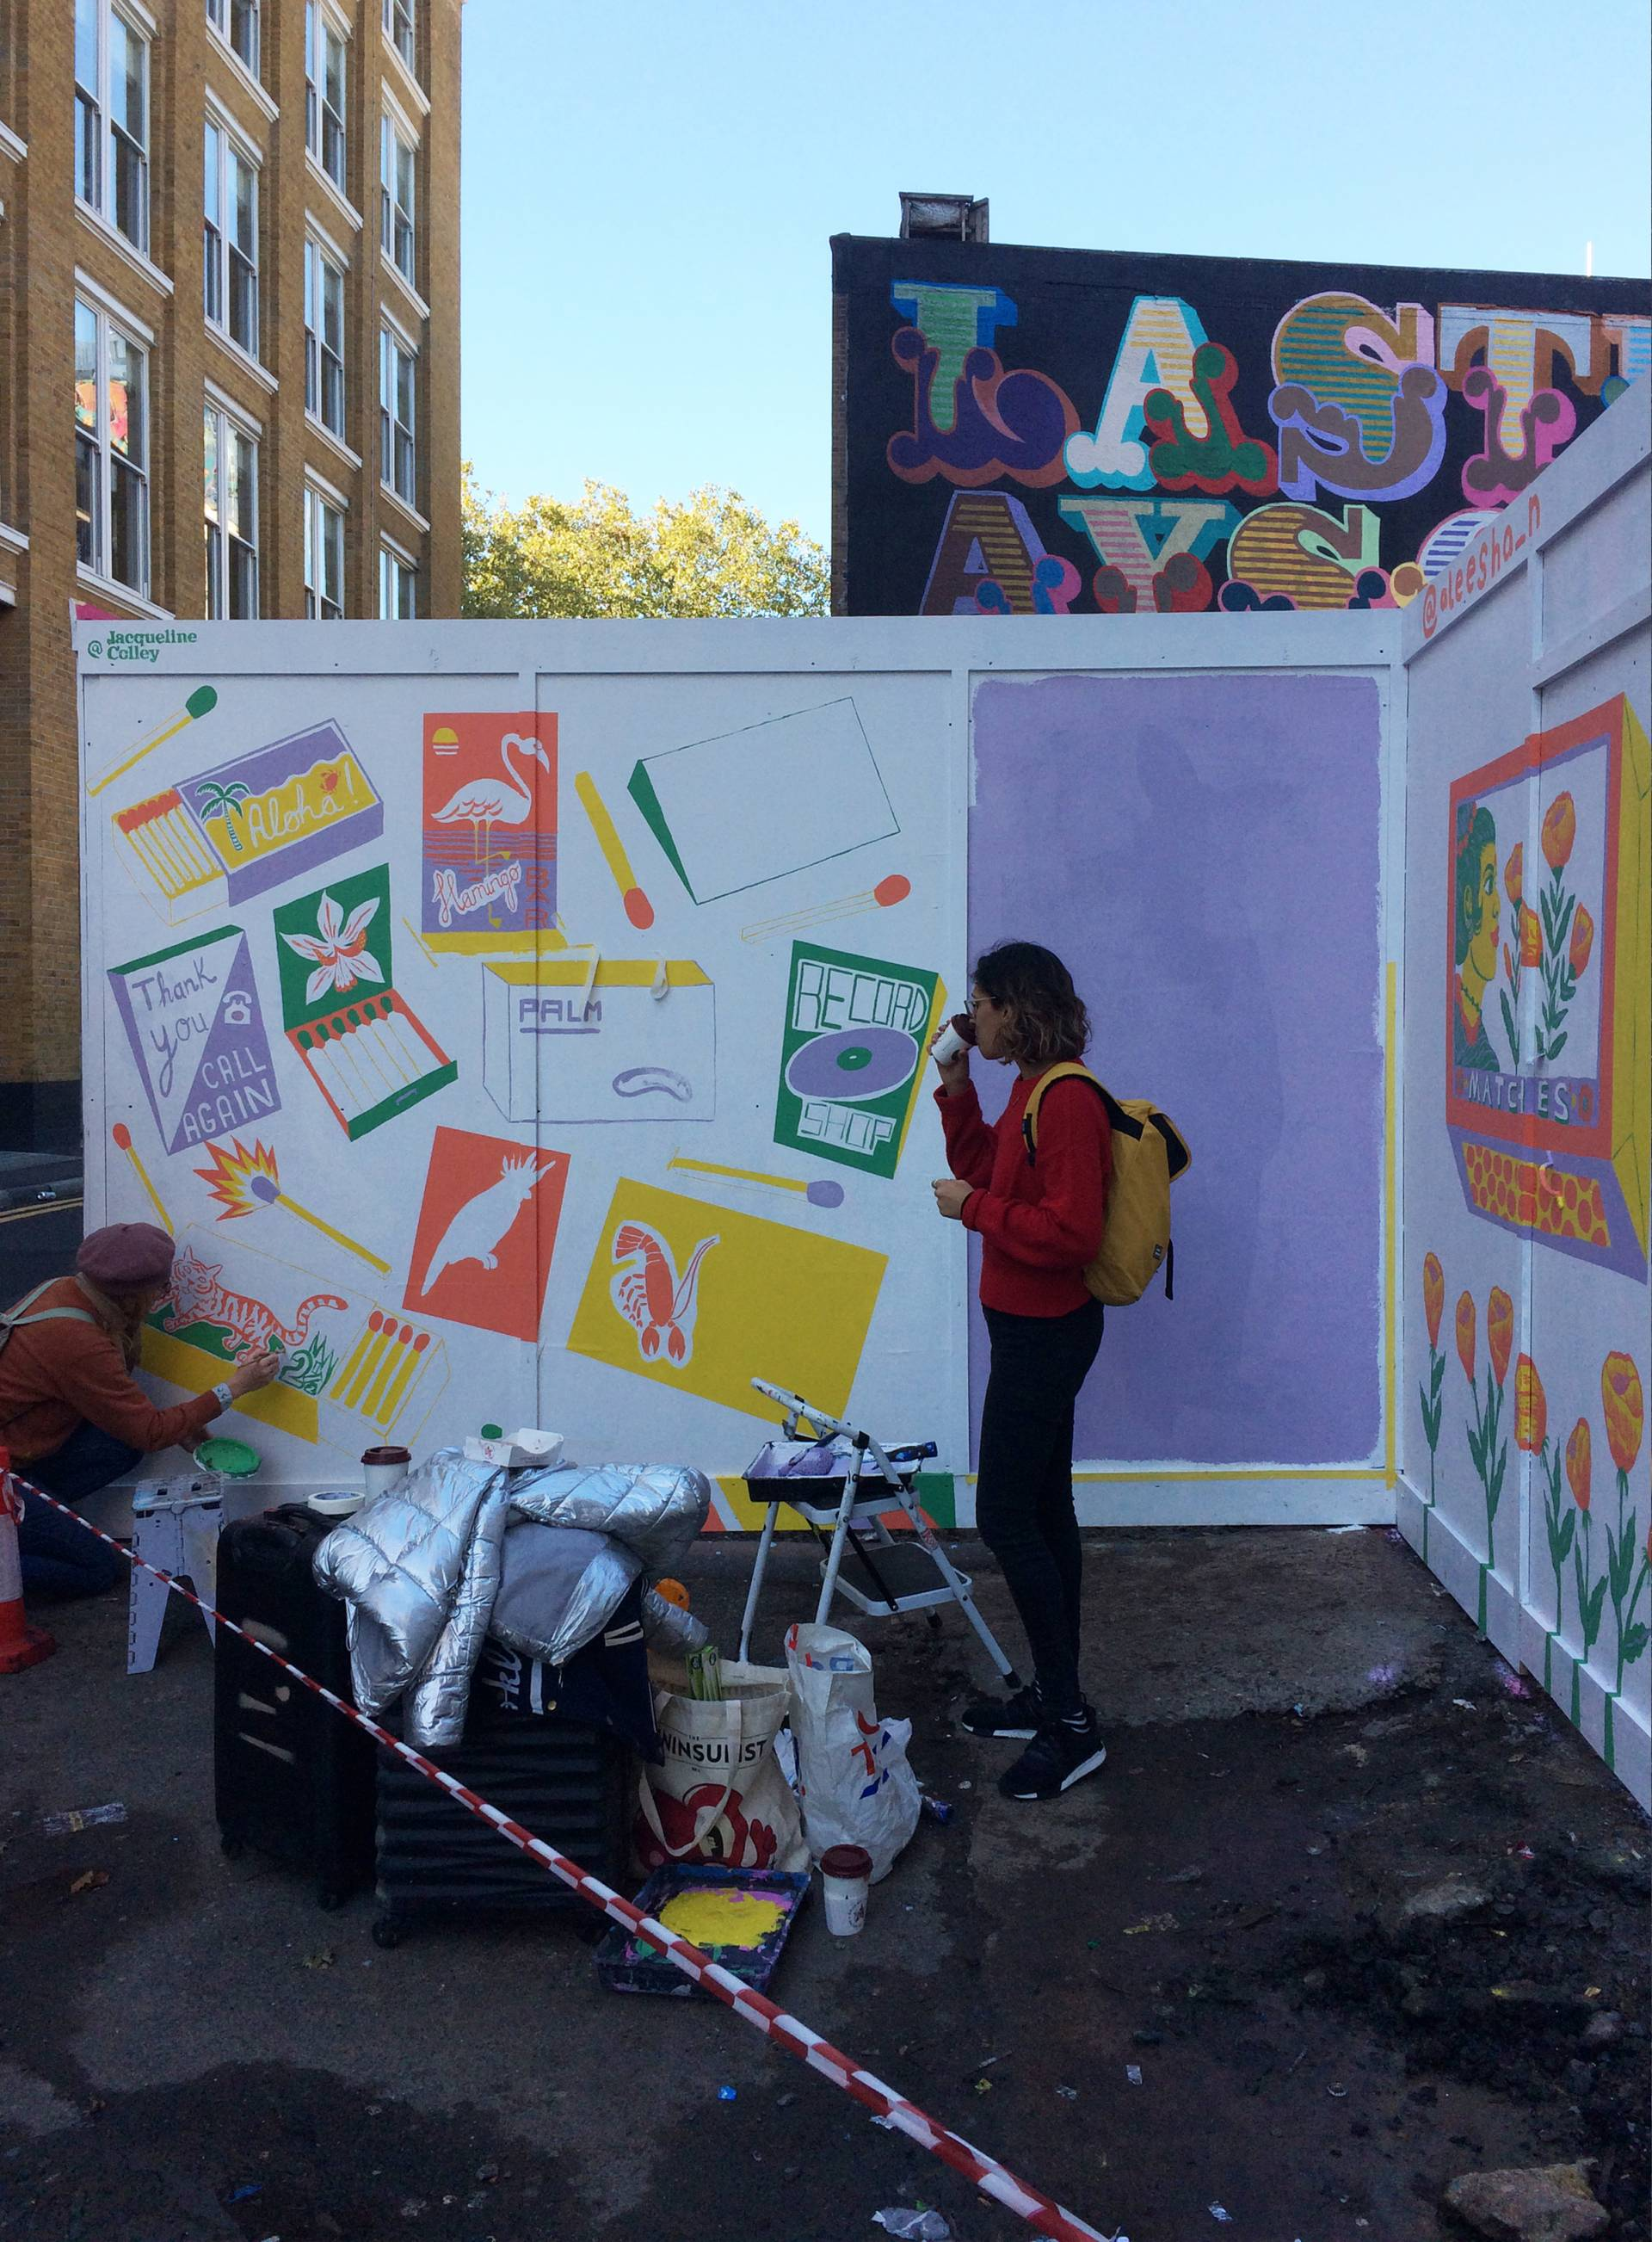 Painting a Mural in London